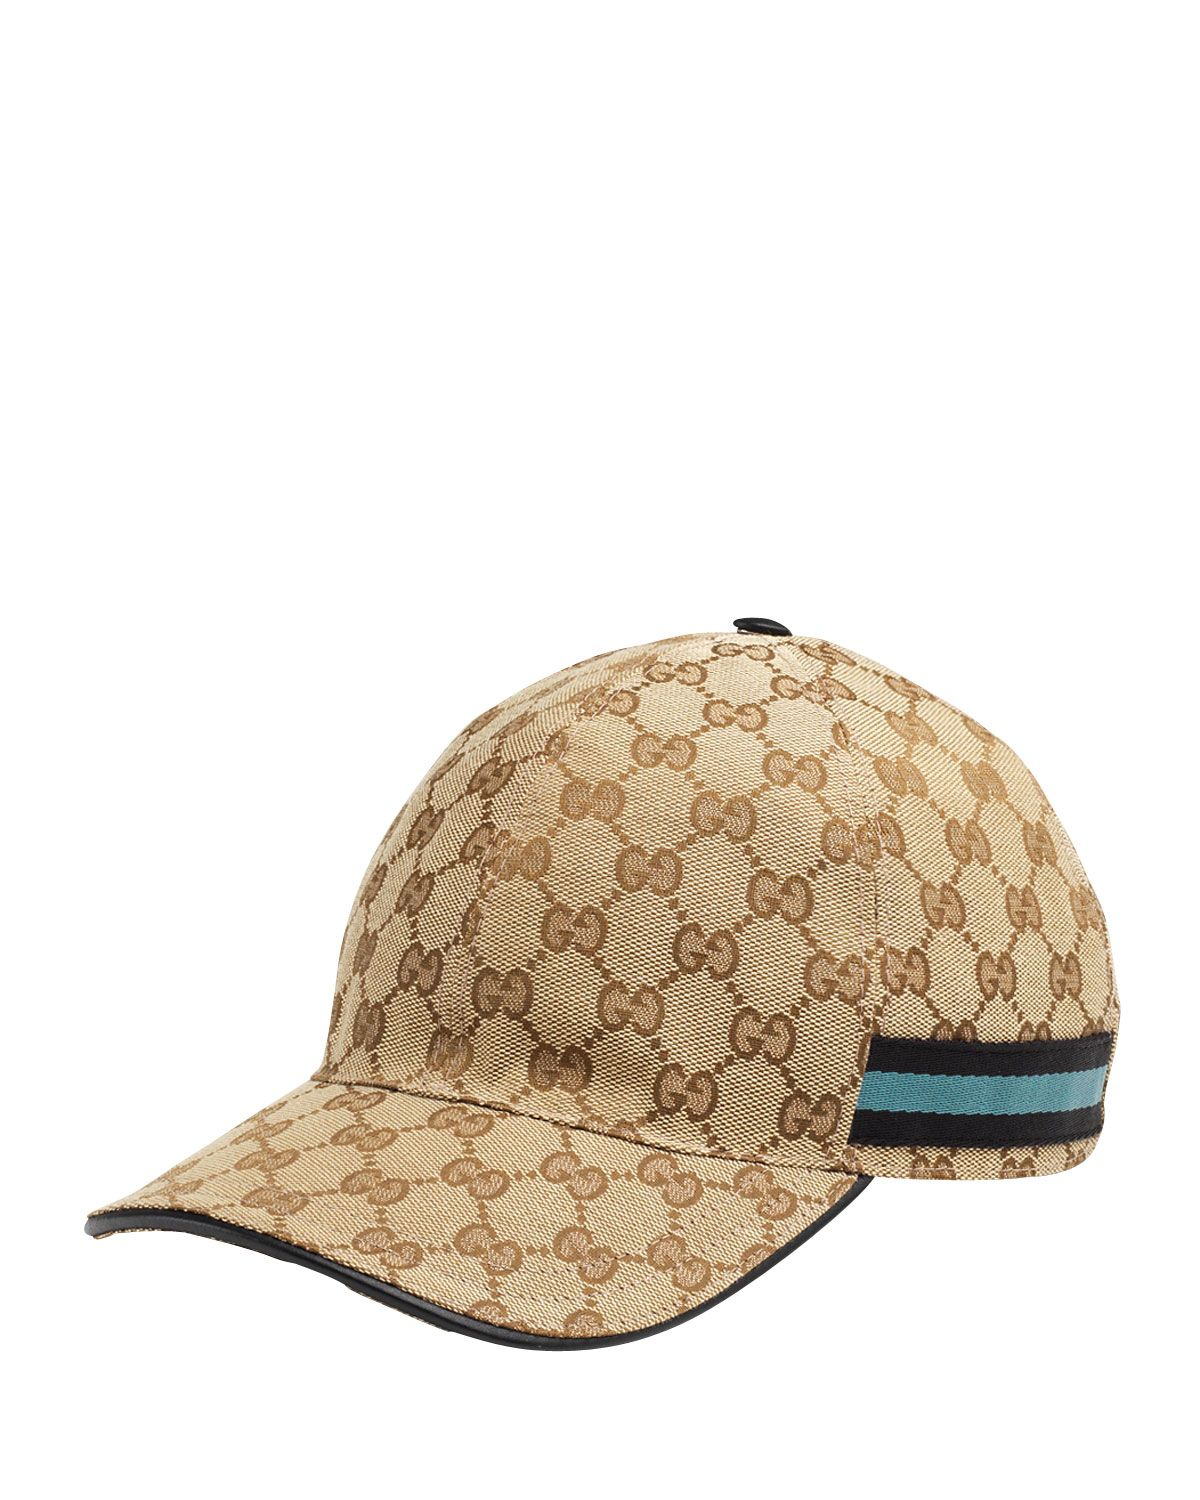 GG Canvas Baseball Hat d83db7313c4